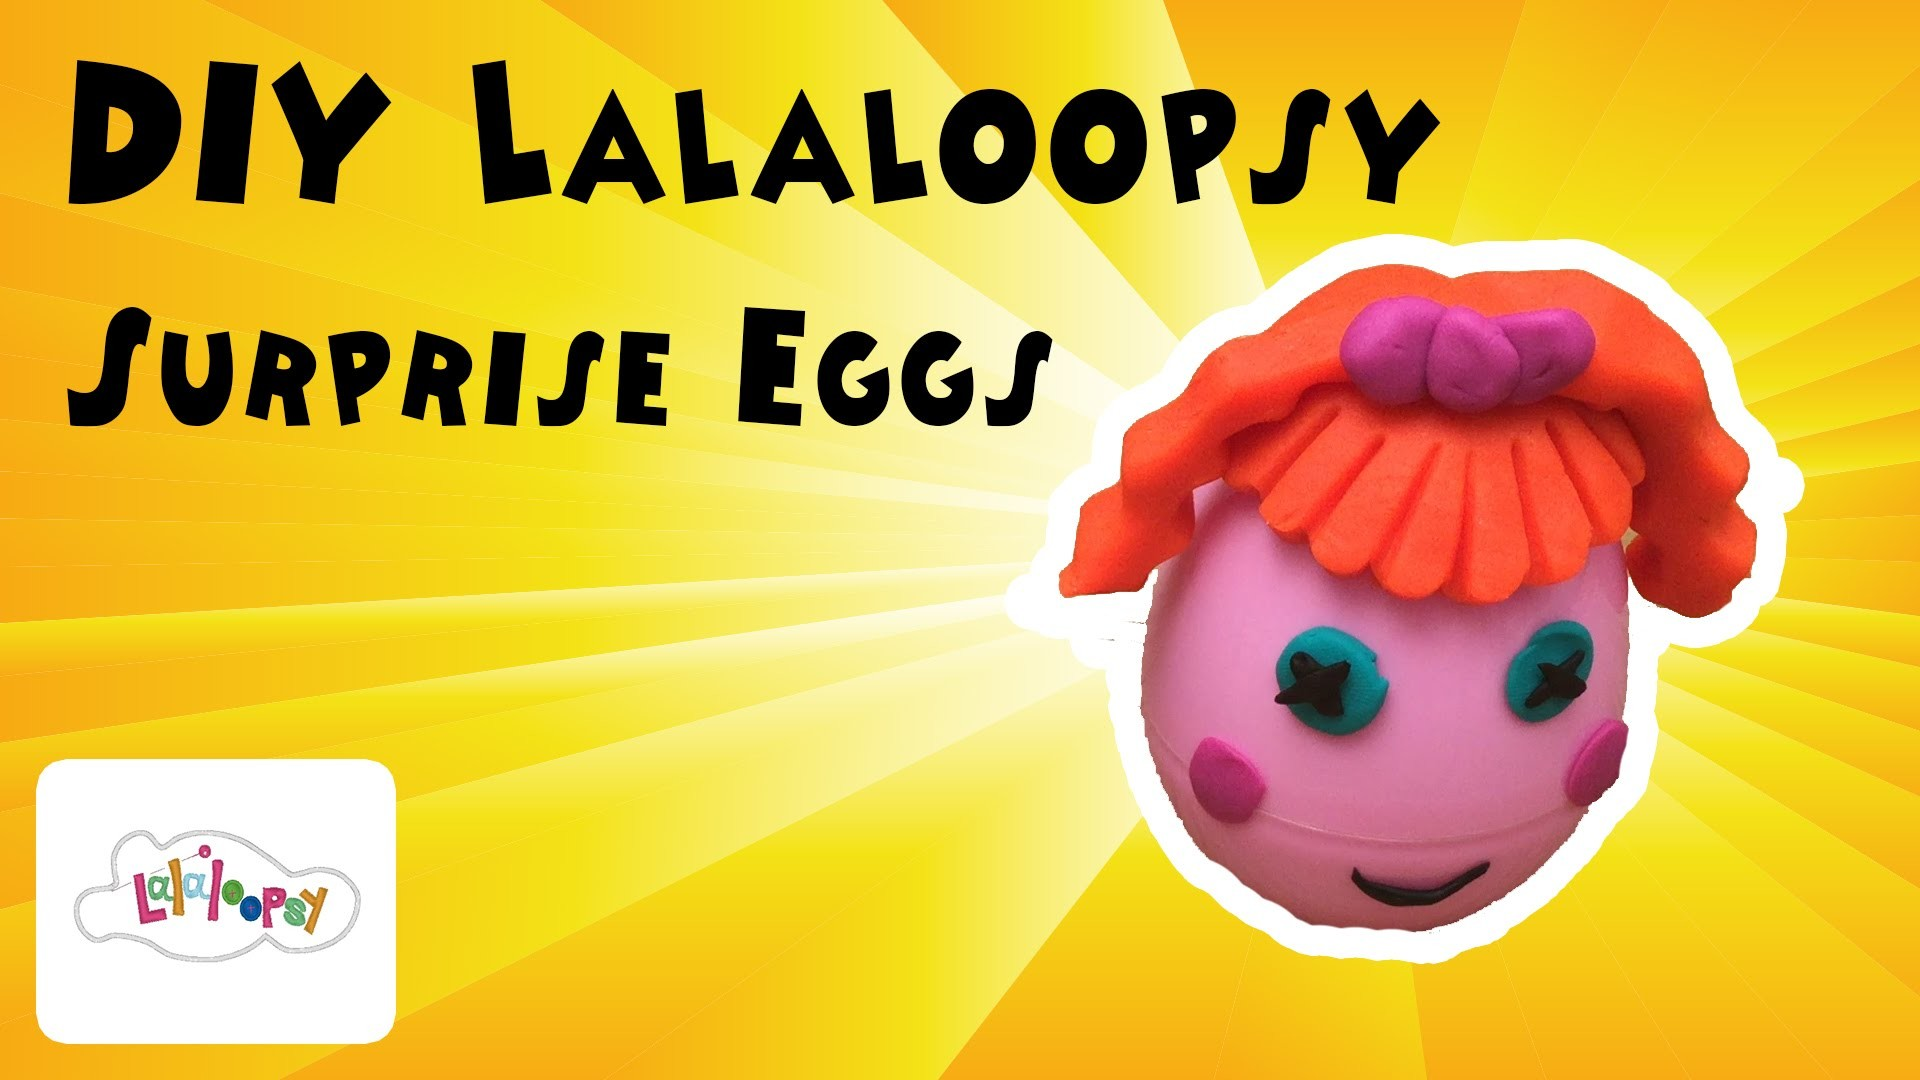 DIY Play doh Lalaloopsy surprise egg, how to make surprise eggs - KidsToysTV